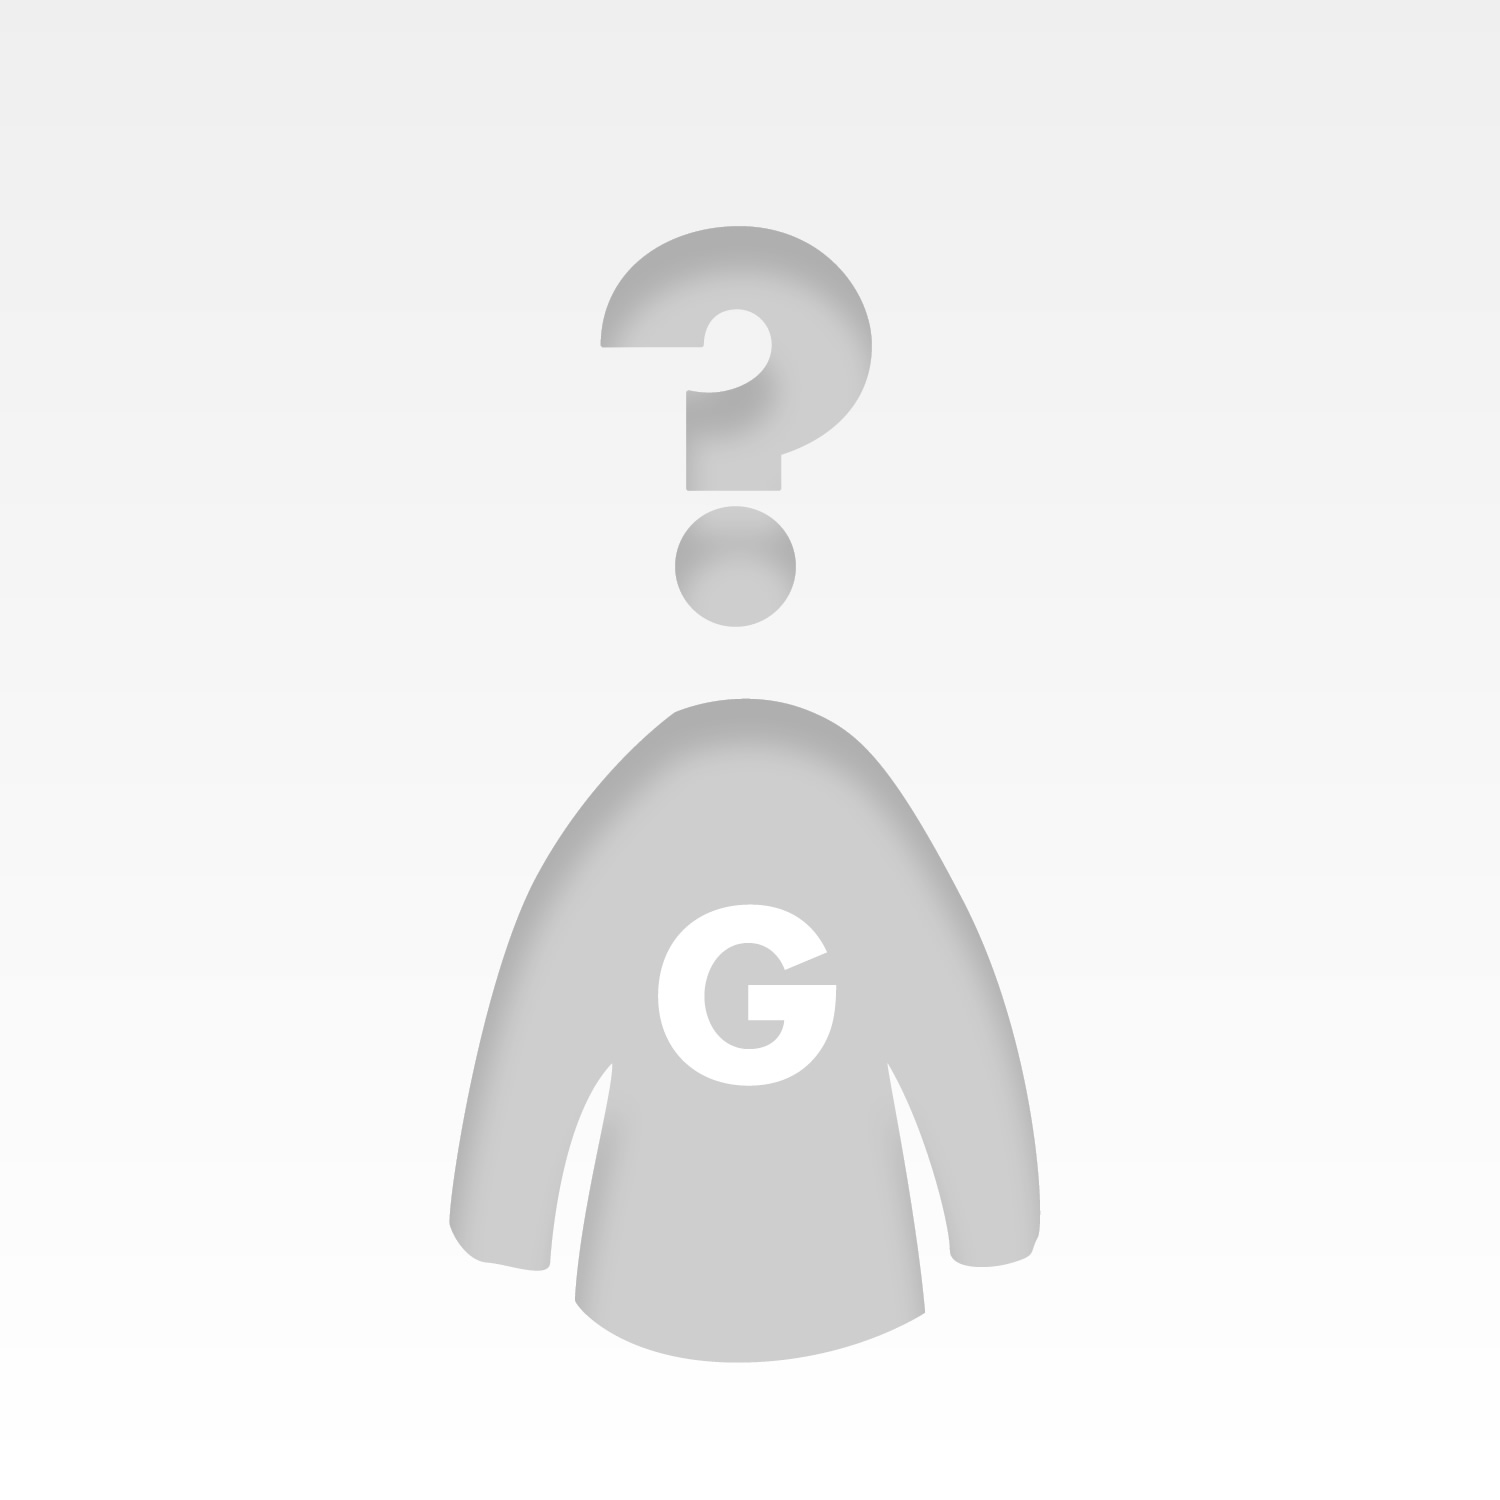 whattodowithjenny\'s avatar